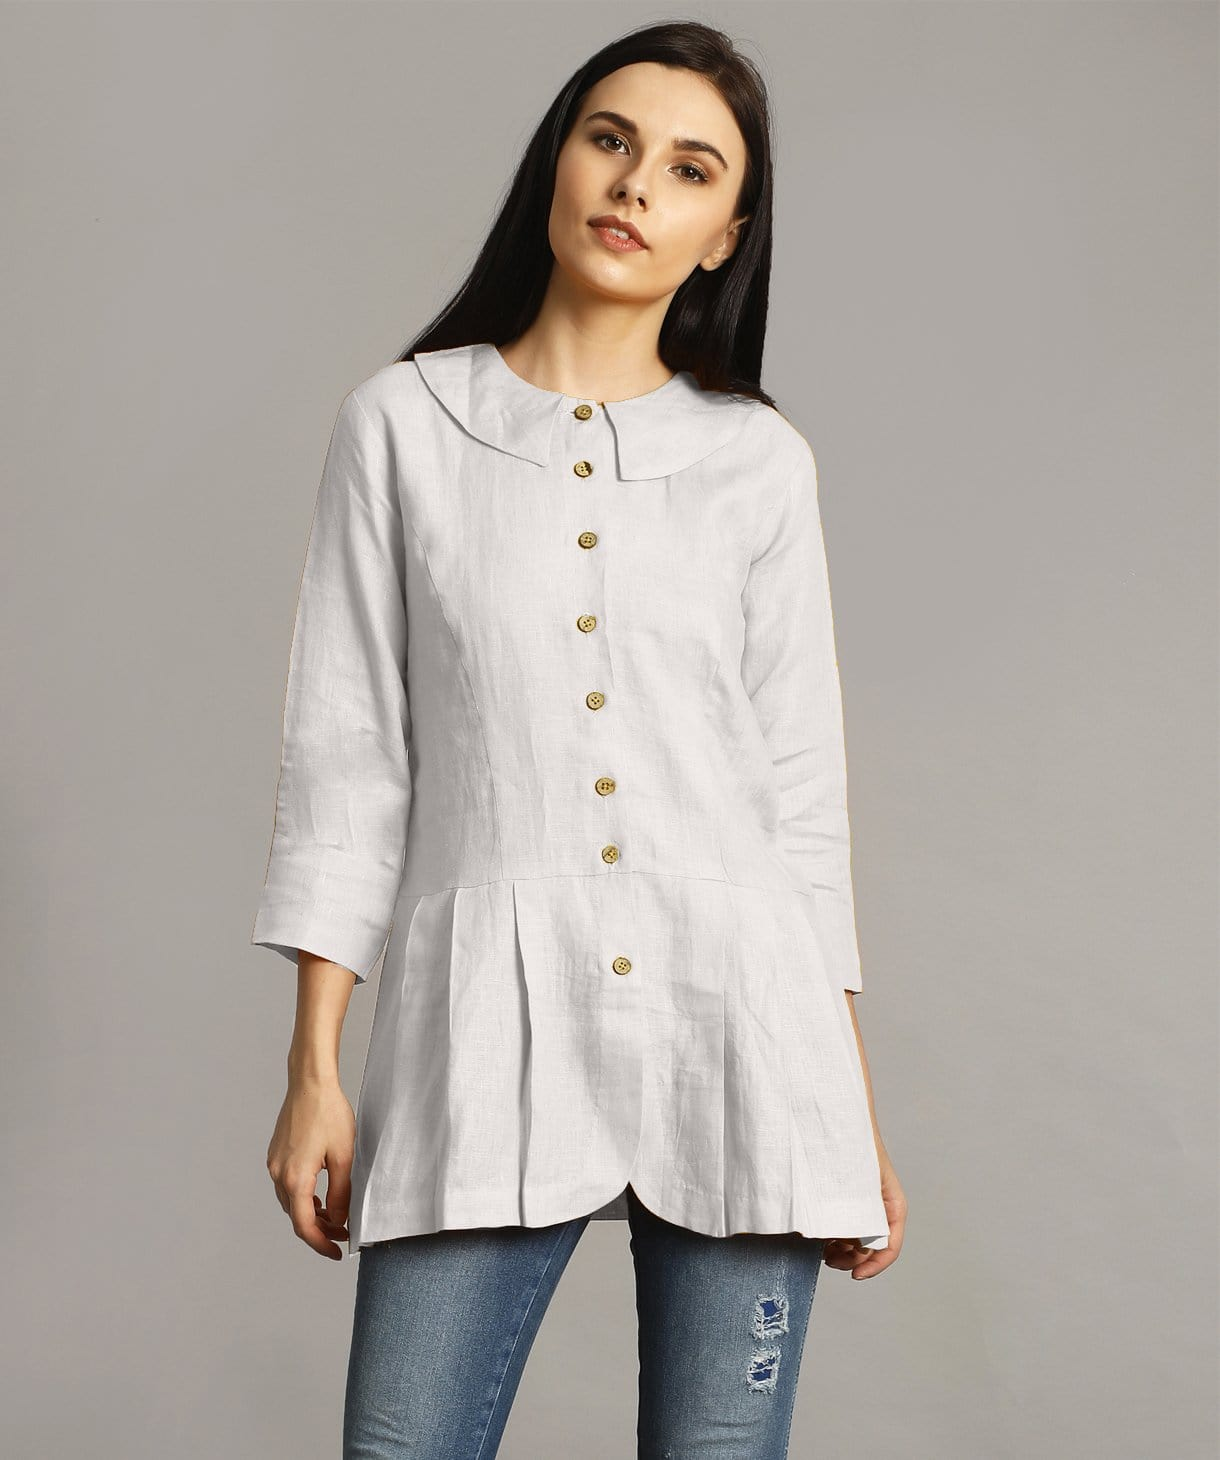 Uptownie Plus White Peter Pan Neck Linen Tunic. FLAT 200 OFF